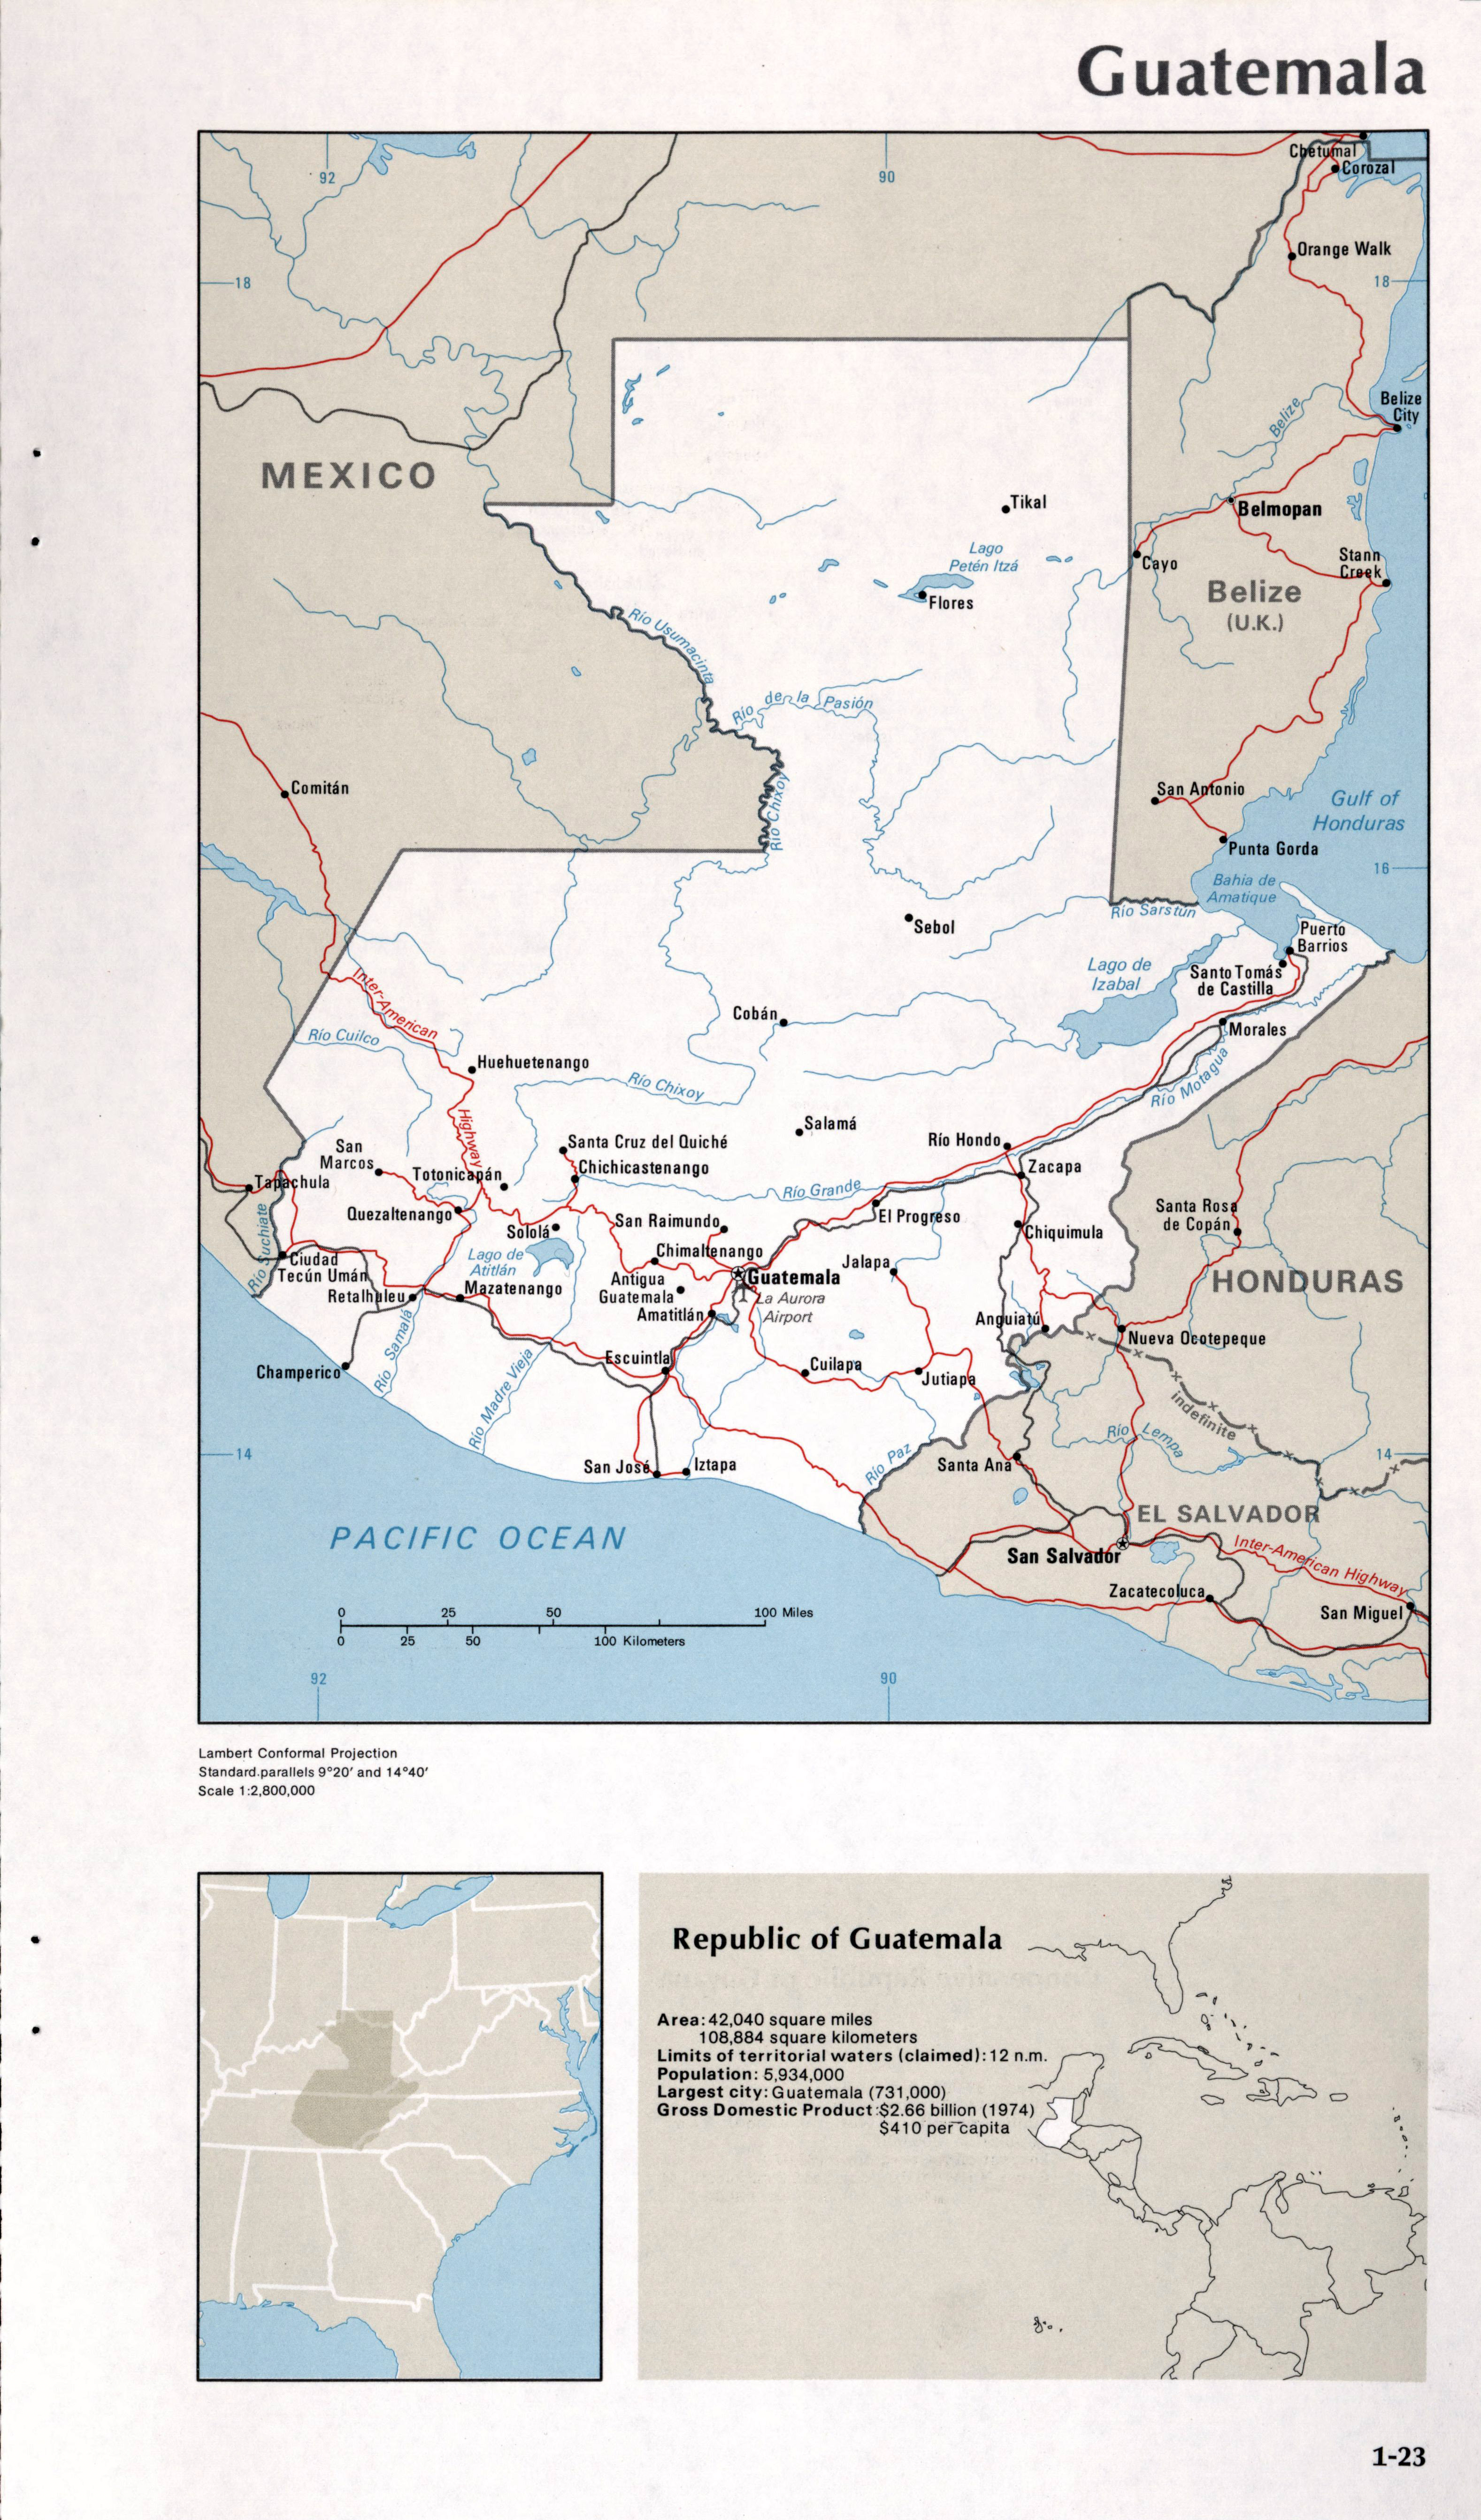 Picture of: Map Of Guatemala 1 23 Western Hemisphere Maps Of The World S Nations World Mapsland Maps Of The World